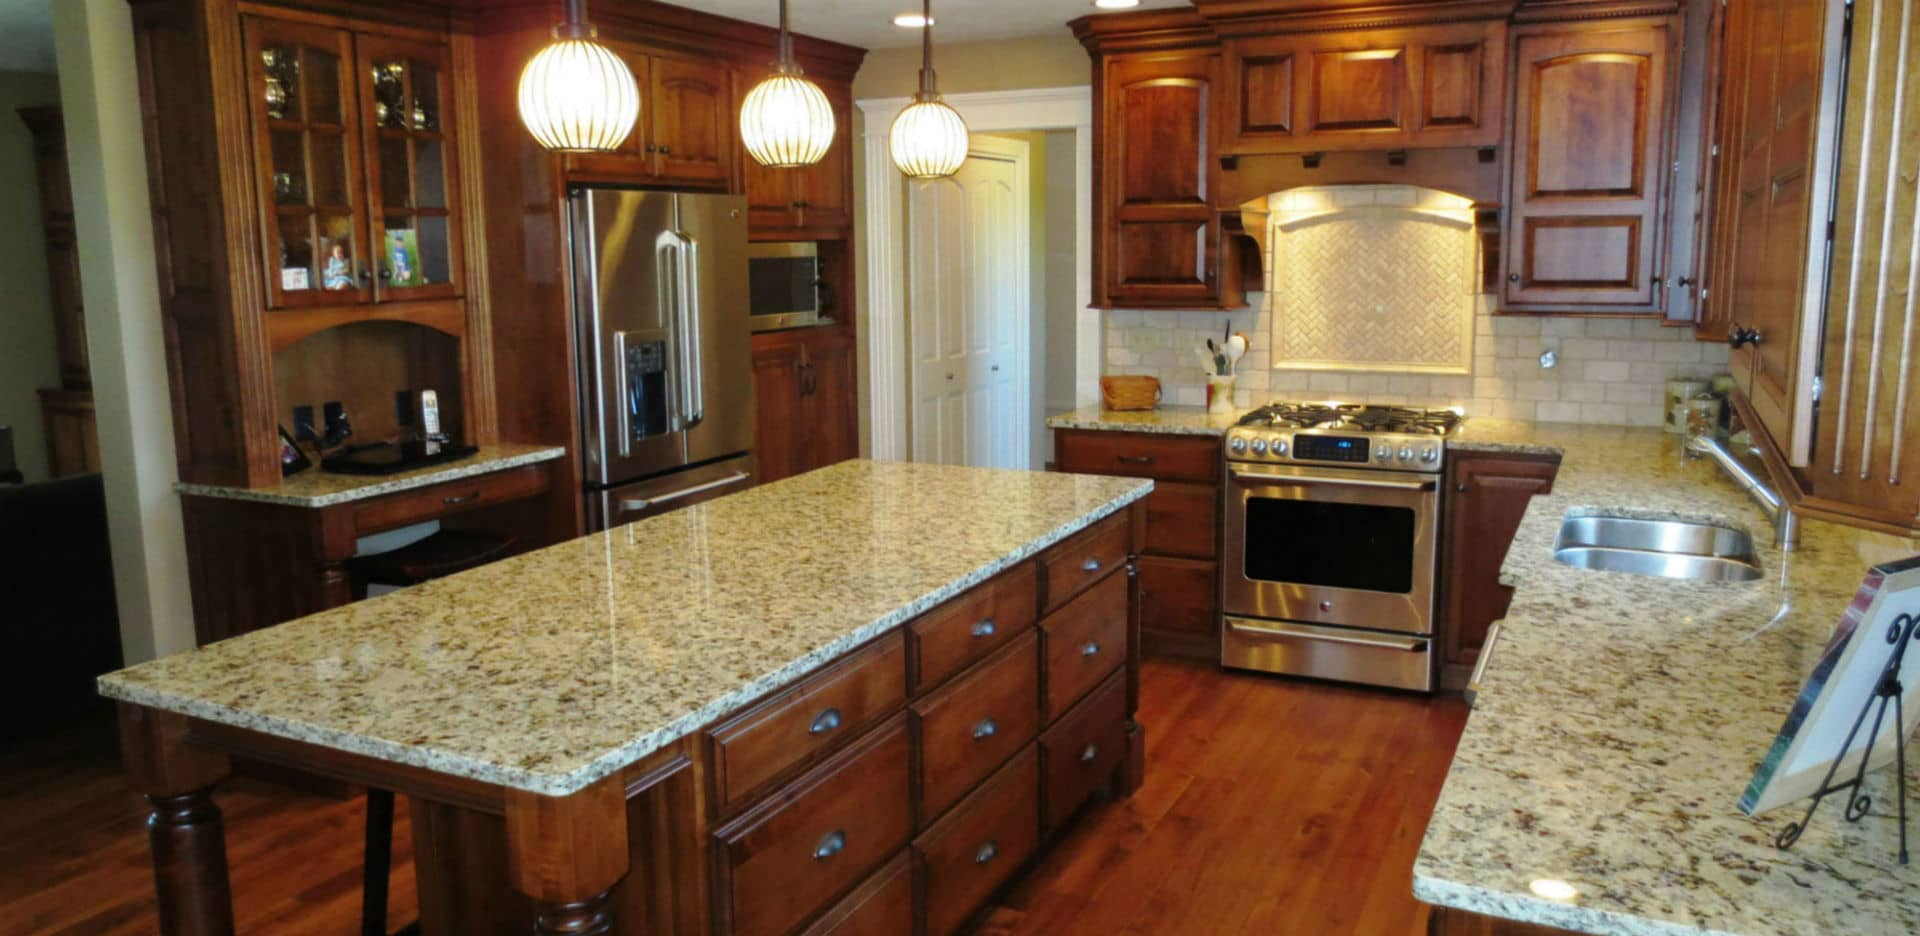 No 1 Amish Cabinets In Peoria Il Cherrytree Kitchens